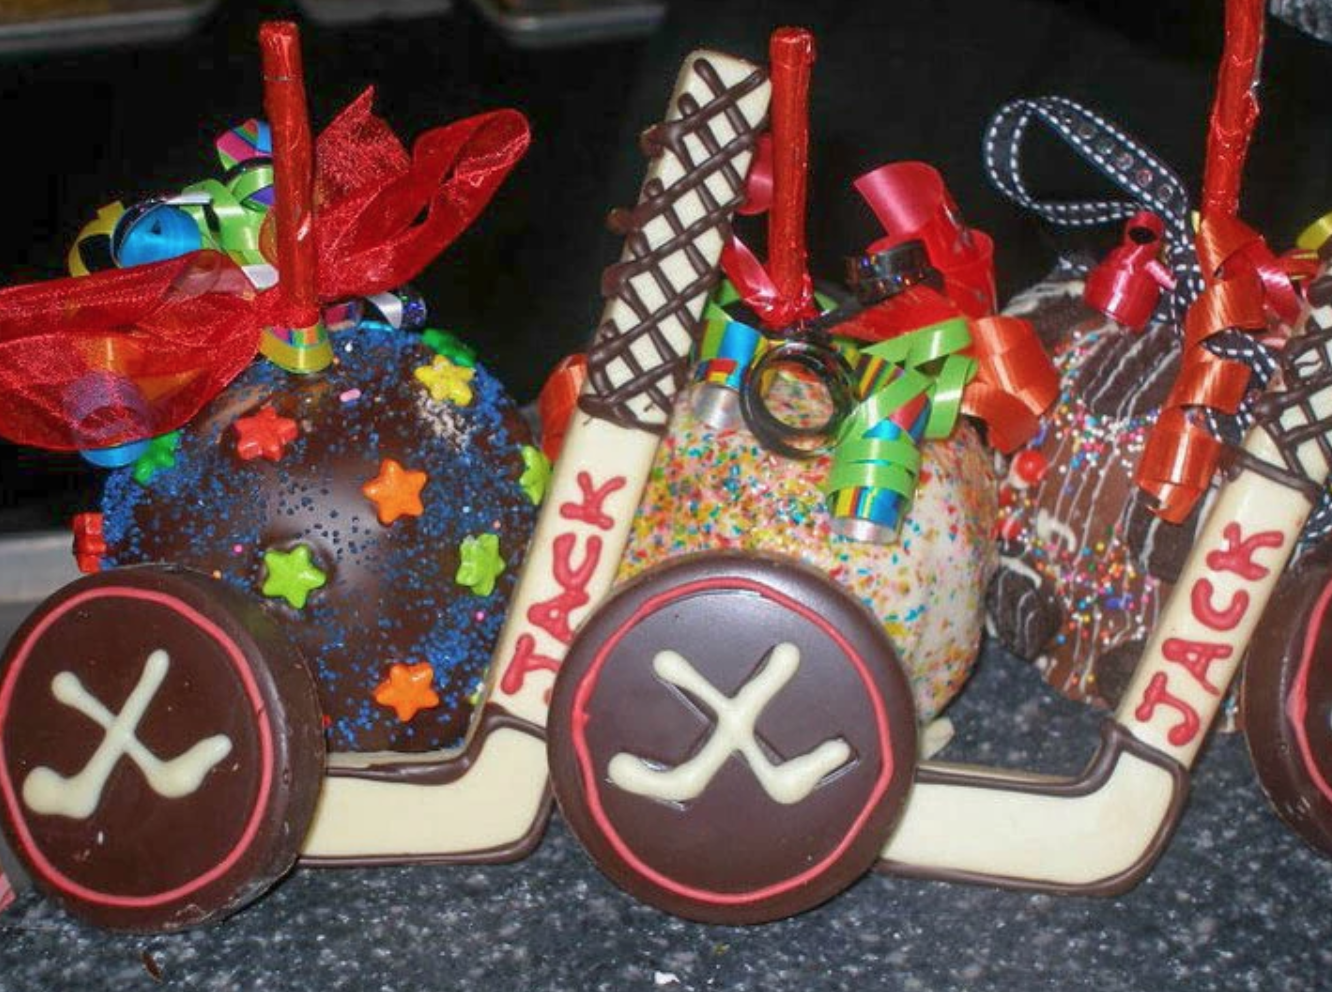 Hockey Themed with Caramel Apples